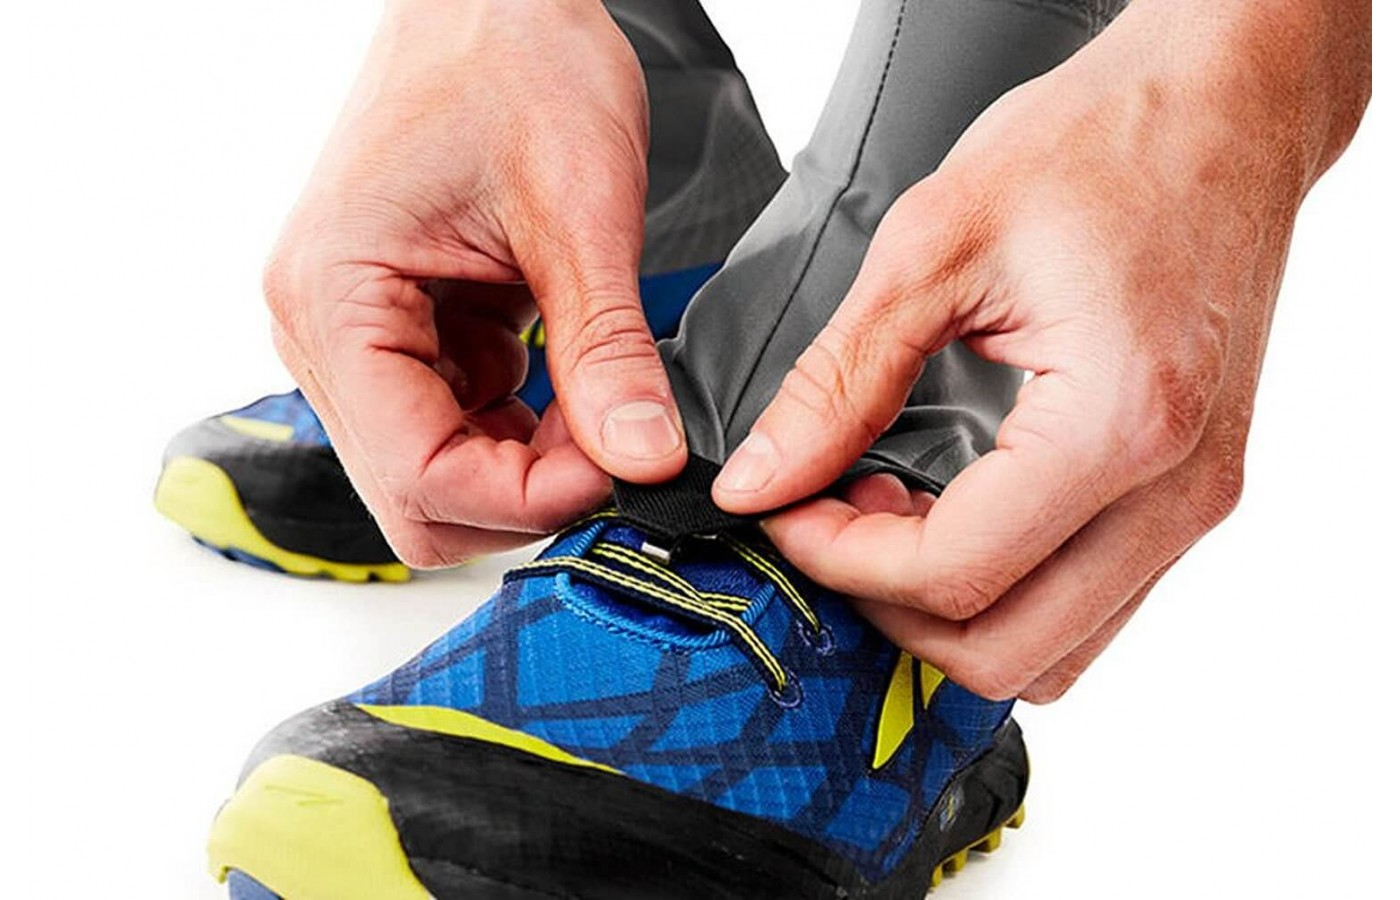 These gaiters are lightweight and breathable to provide a comfortable fit.